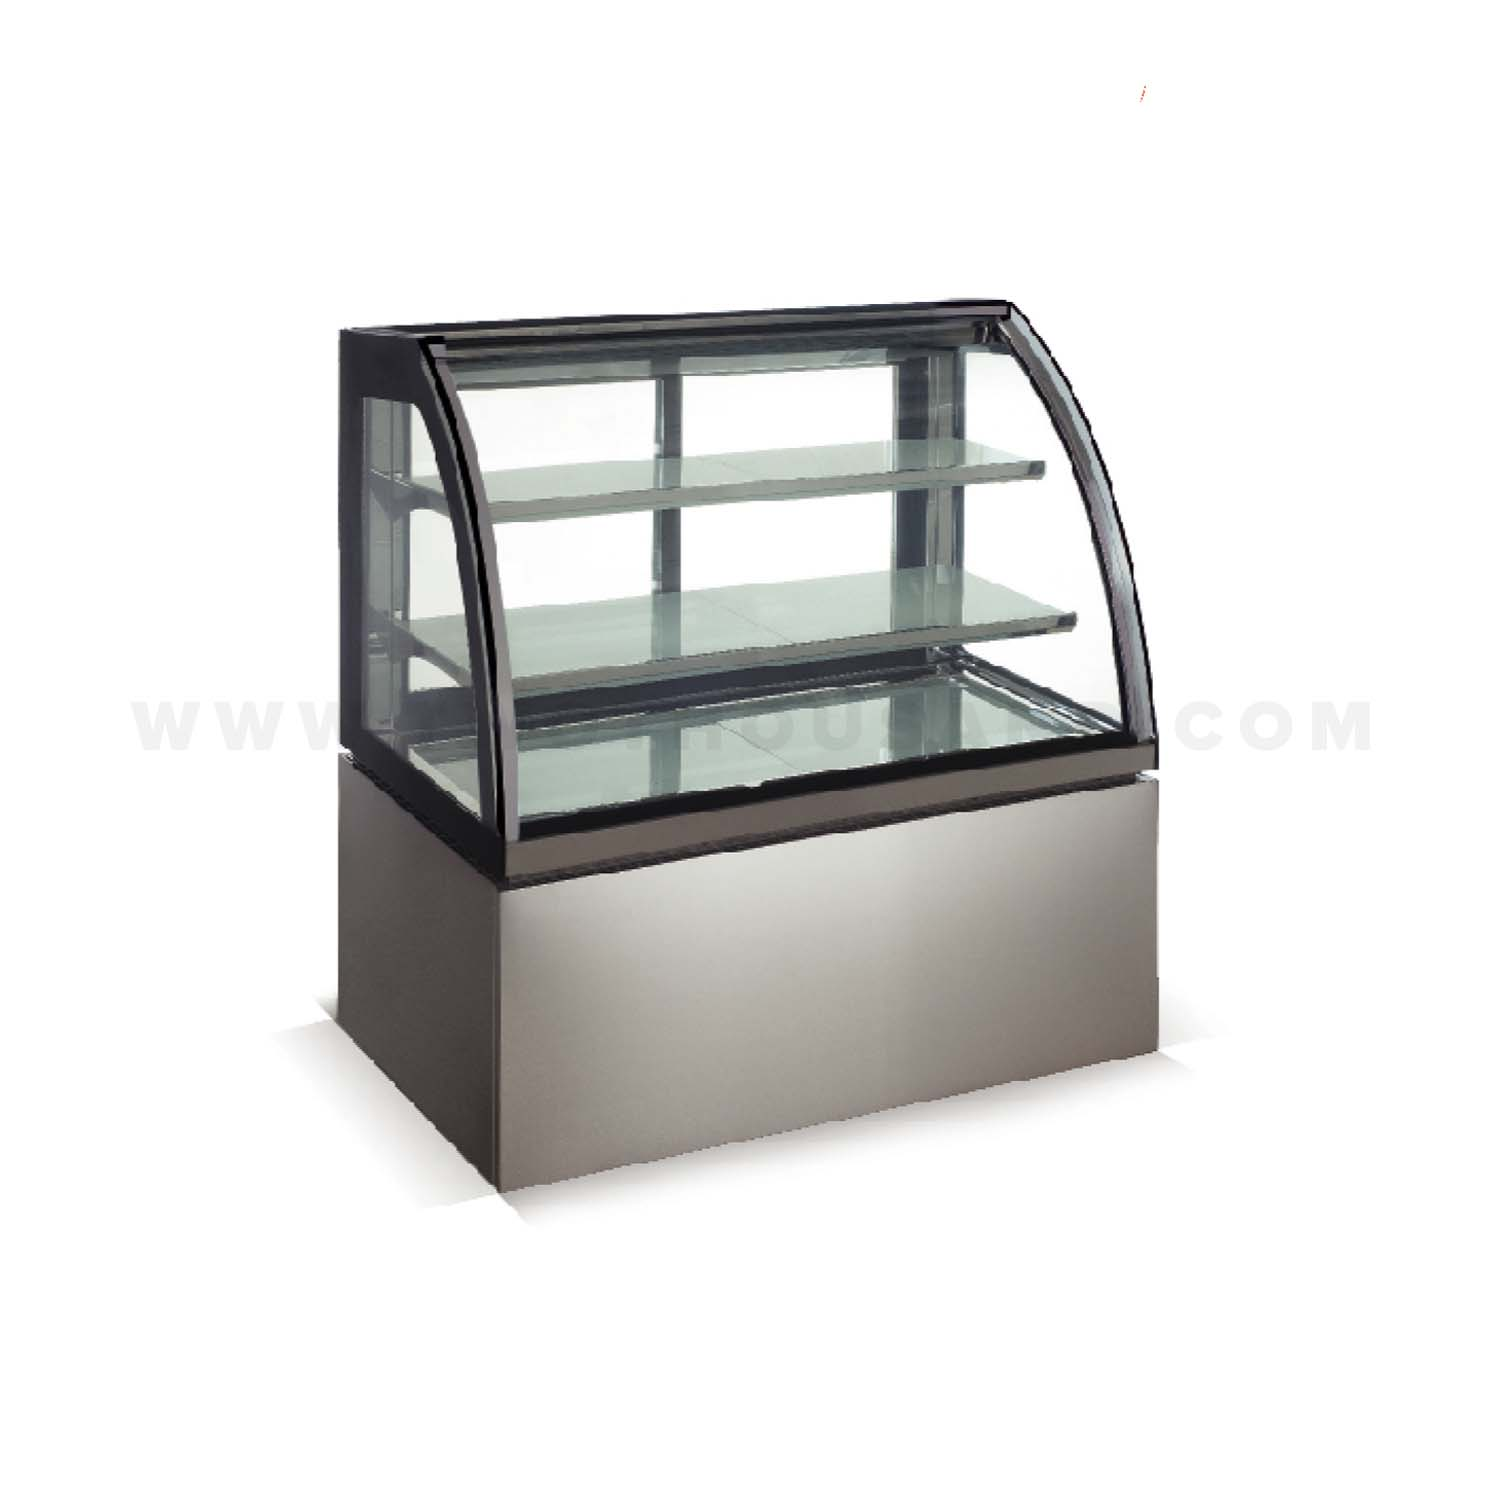 Tt Md80d 575l Ce Movable Shelves Glass Bakery Cake Display C Buy Cake Display Refrigerator Counter Top Display Refrigerator Cake Refrigerator Product On Alibaba Com